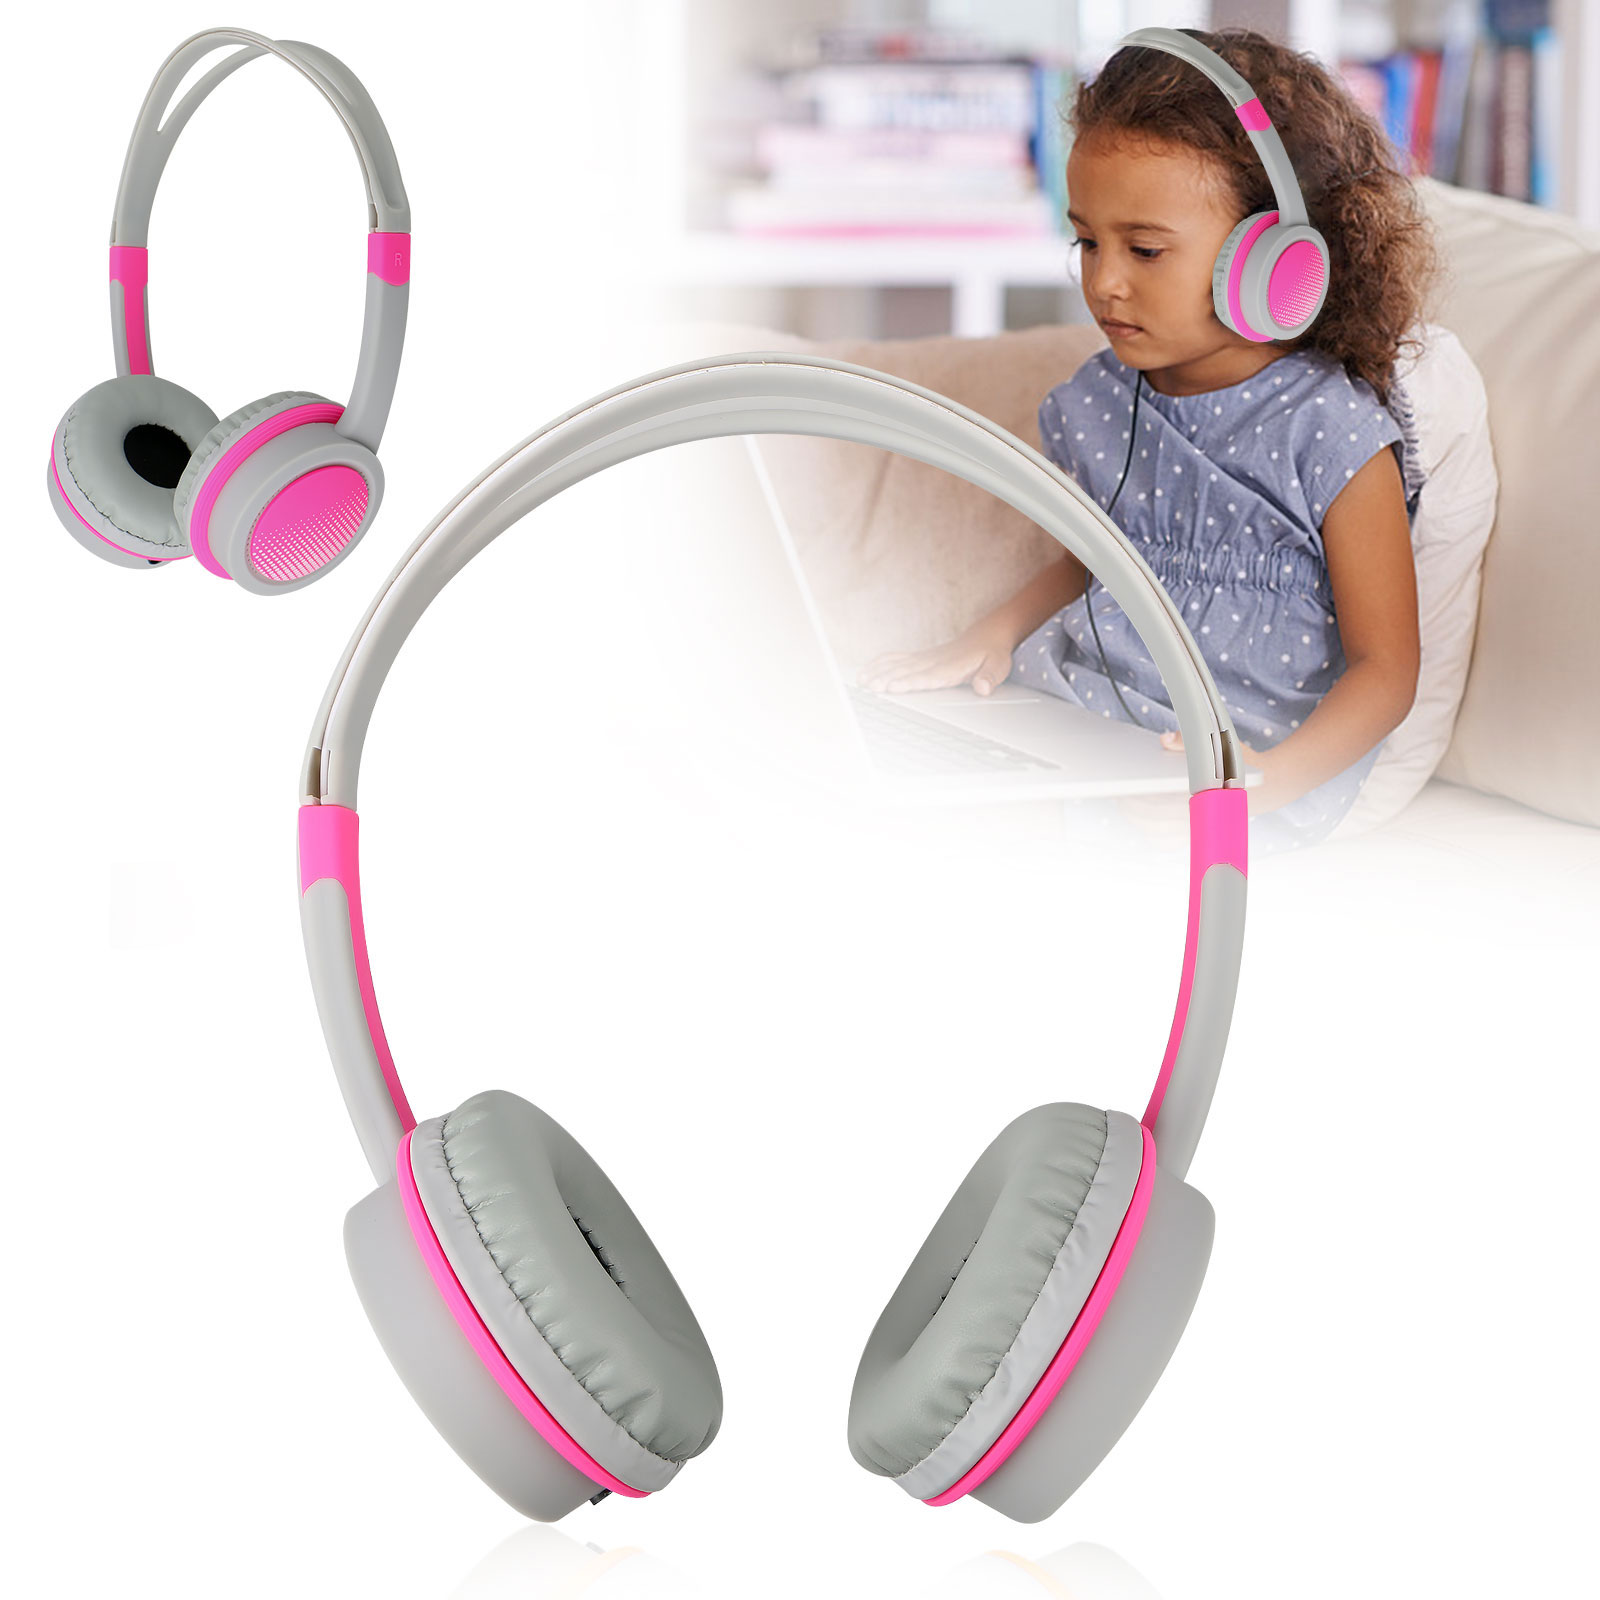 3.5mm Wired Kids Children Headphones Headsets Child School Earphone Compatible with Cell Phones iPad Tablets PC Computer MP4 MP3